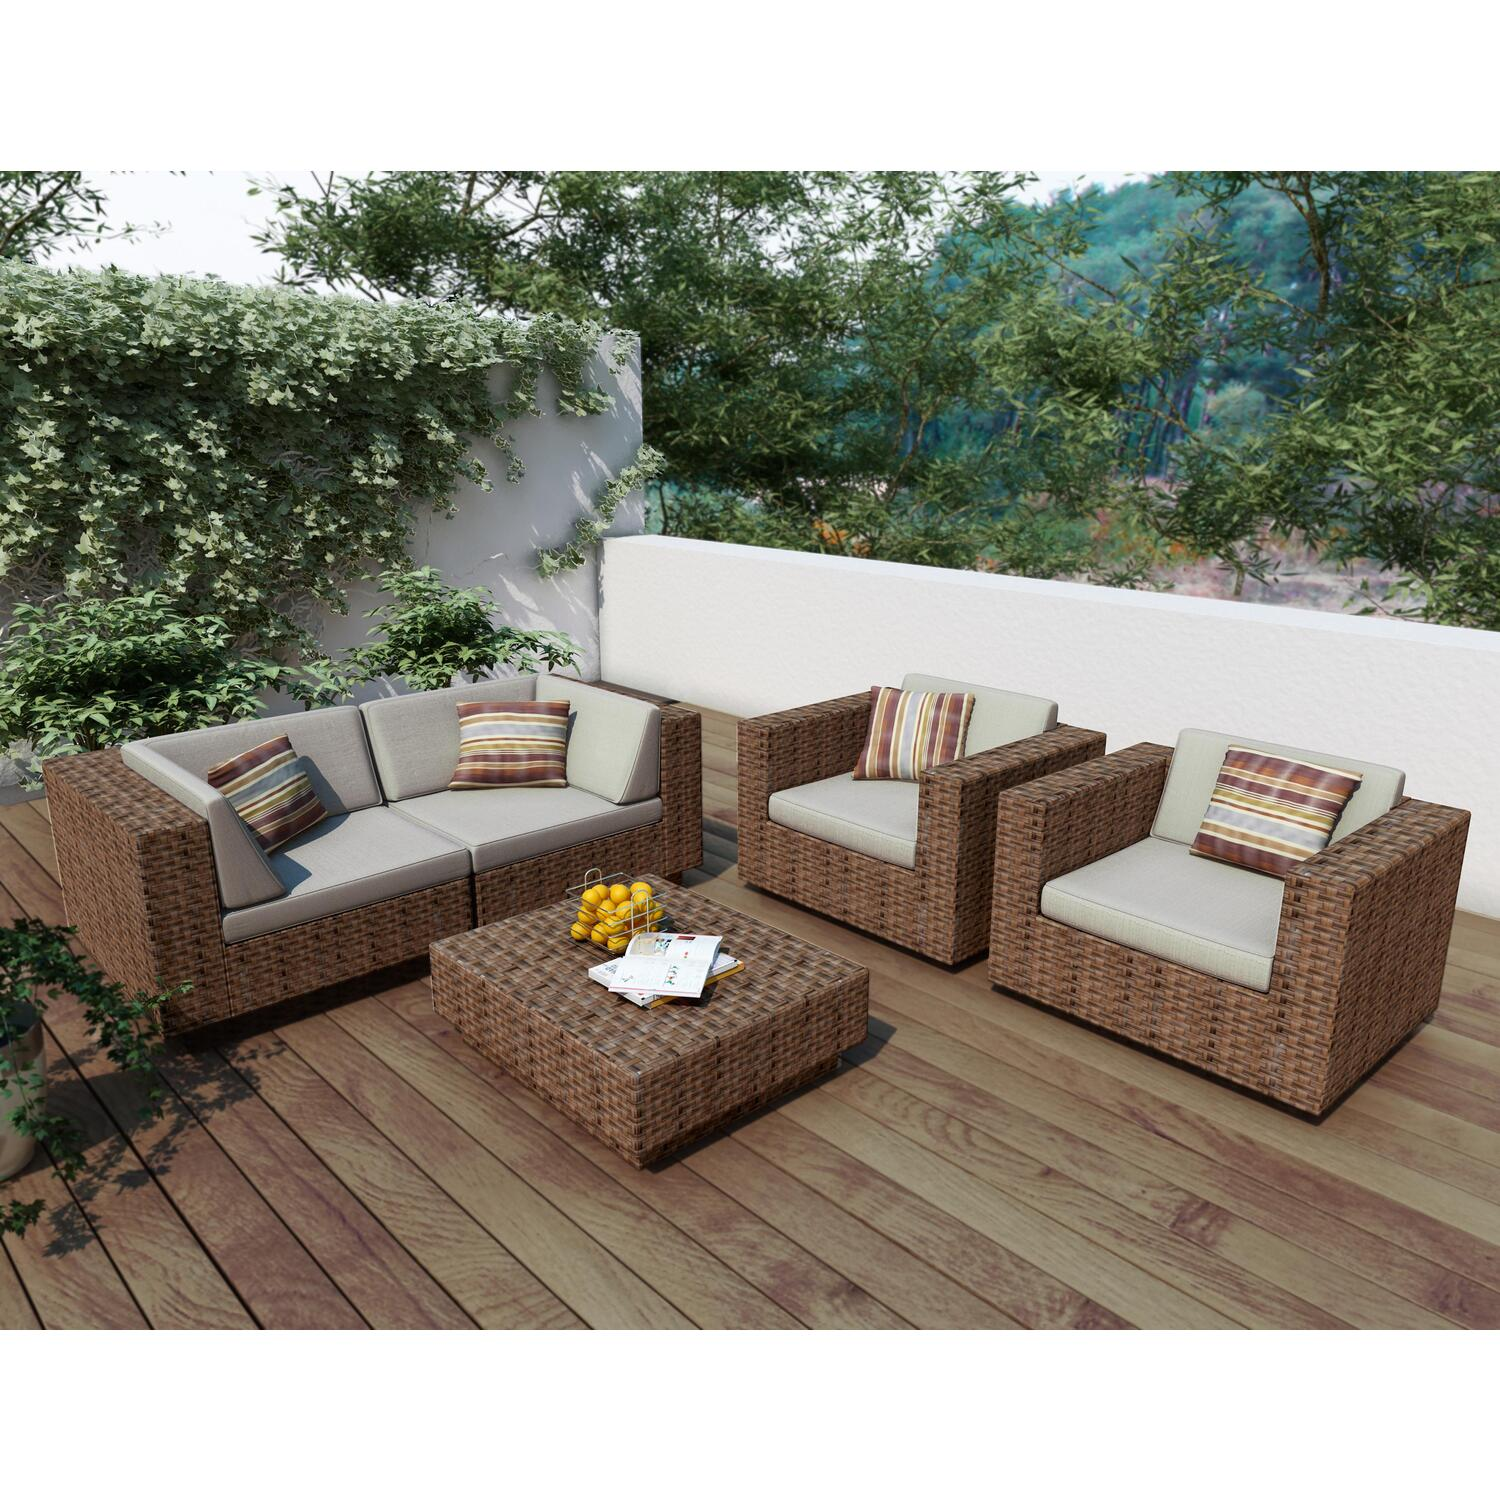 Park terrace 5 piece sofa patio set ojcommerce for Garden patio furniture sets